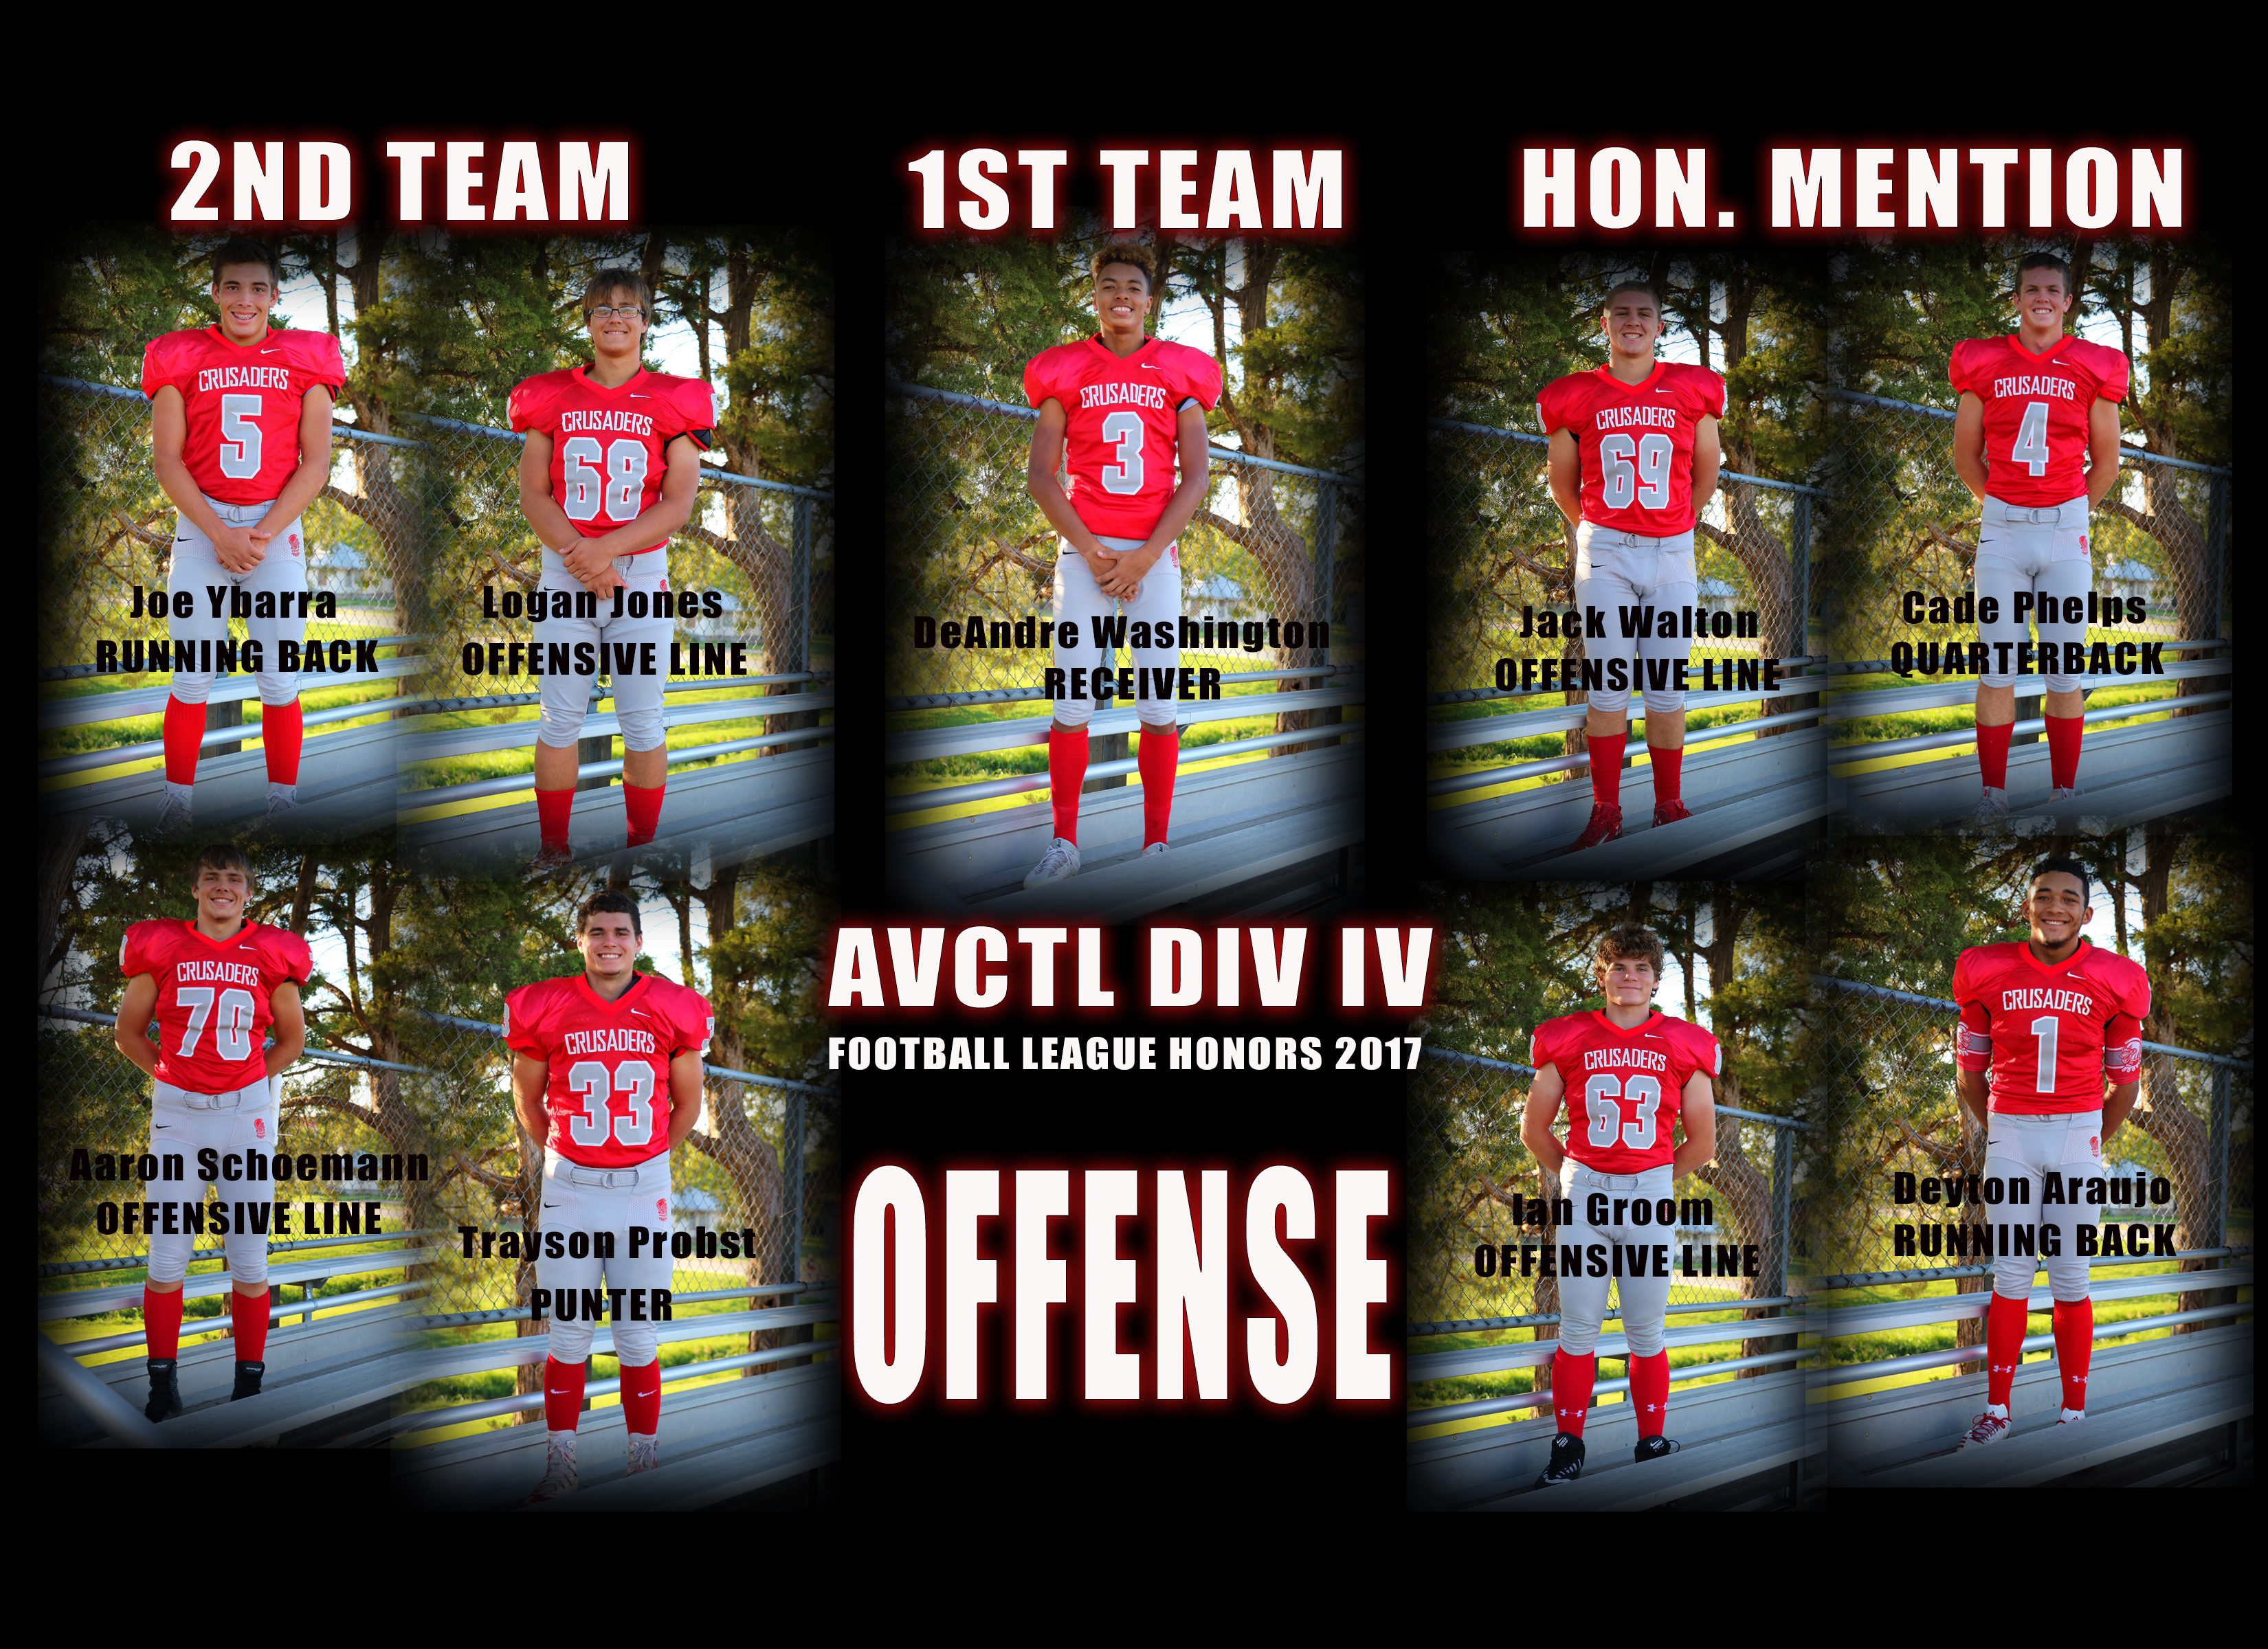 Offensive League Honors AVCTL DIV IV 2017